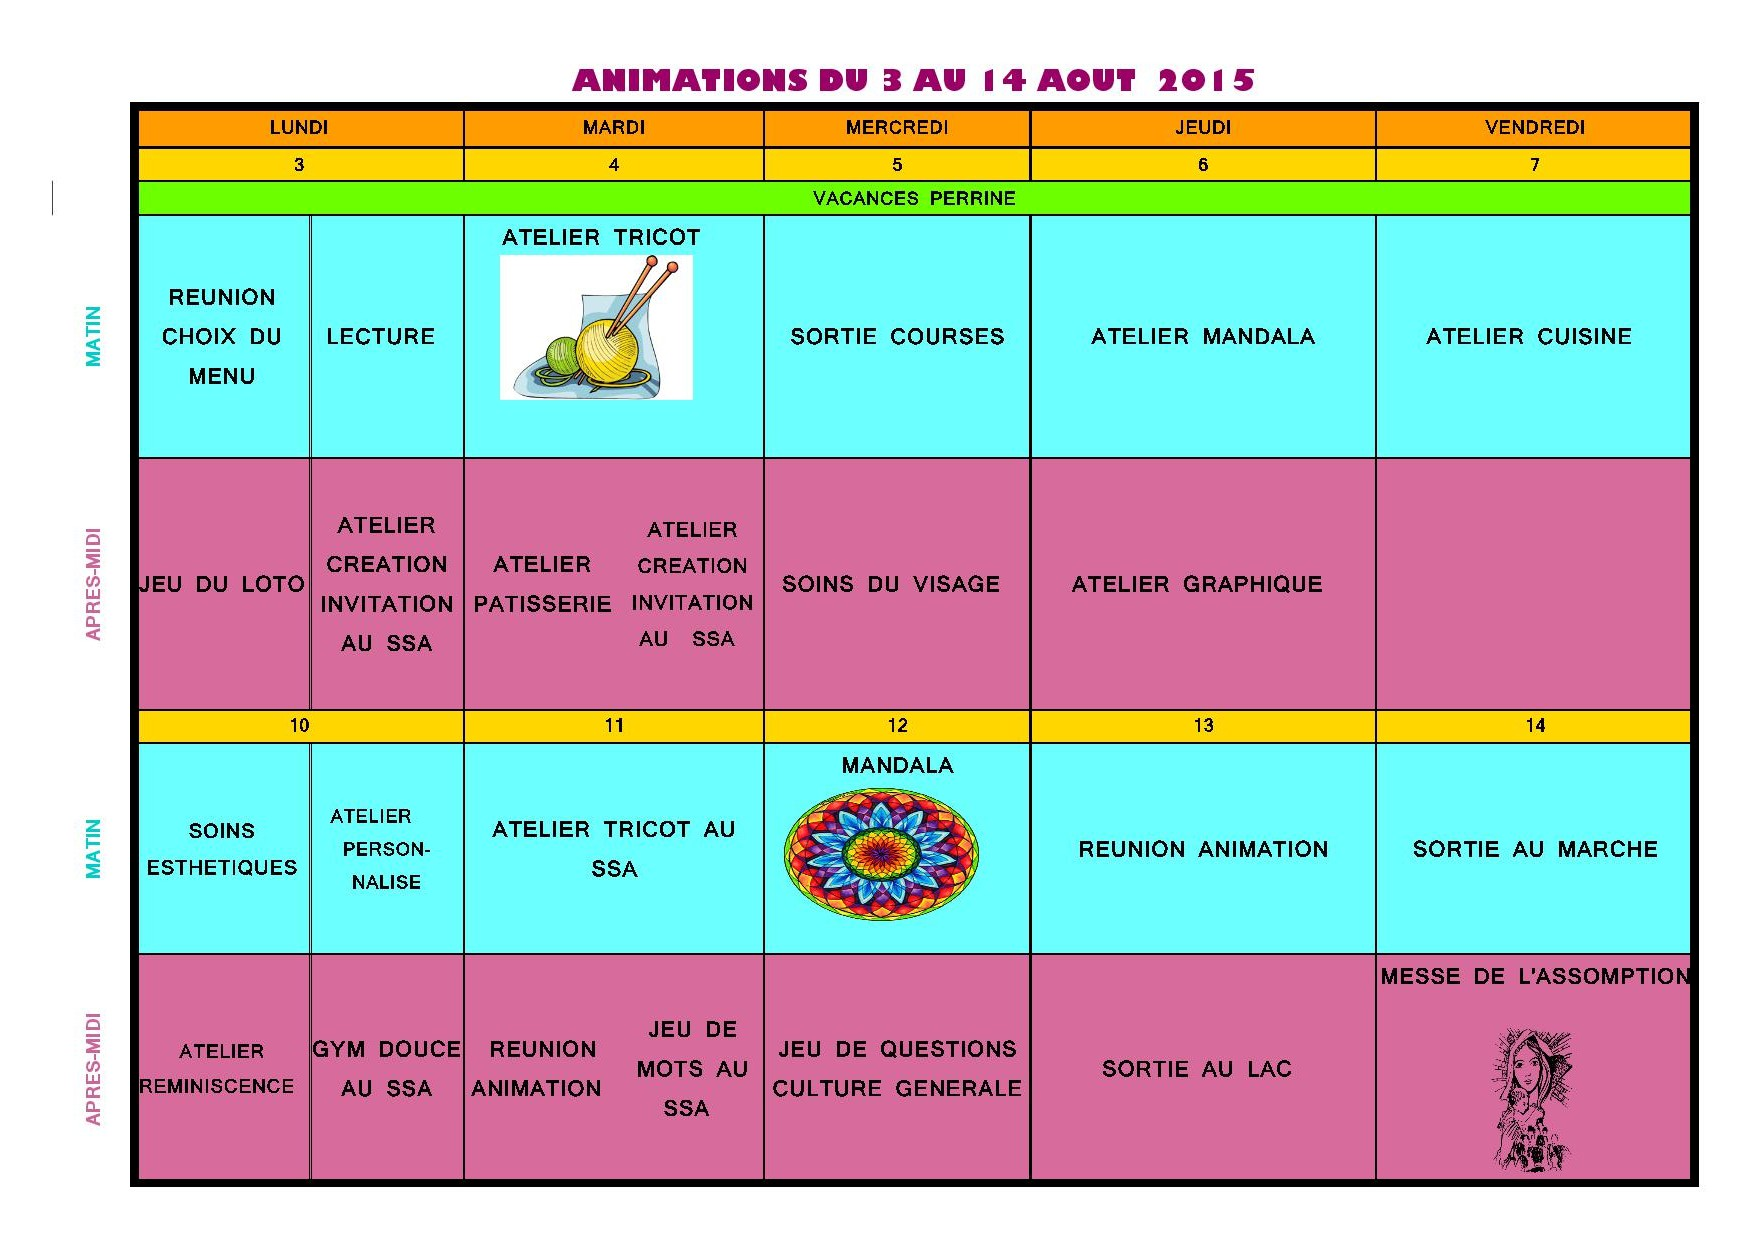 Planning des animations pour les r sidents du 3 au 14 ao t for Animation musicale maison de retraite